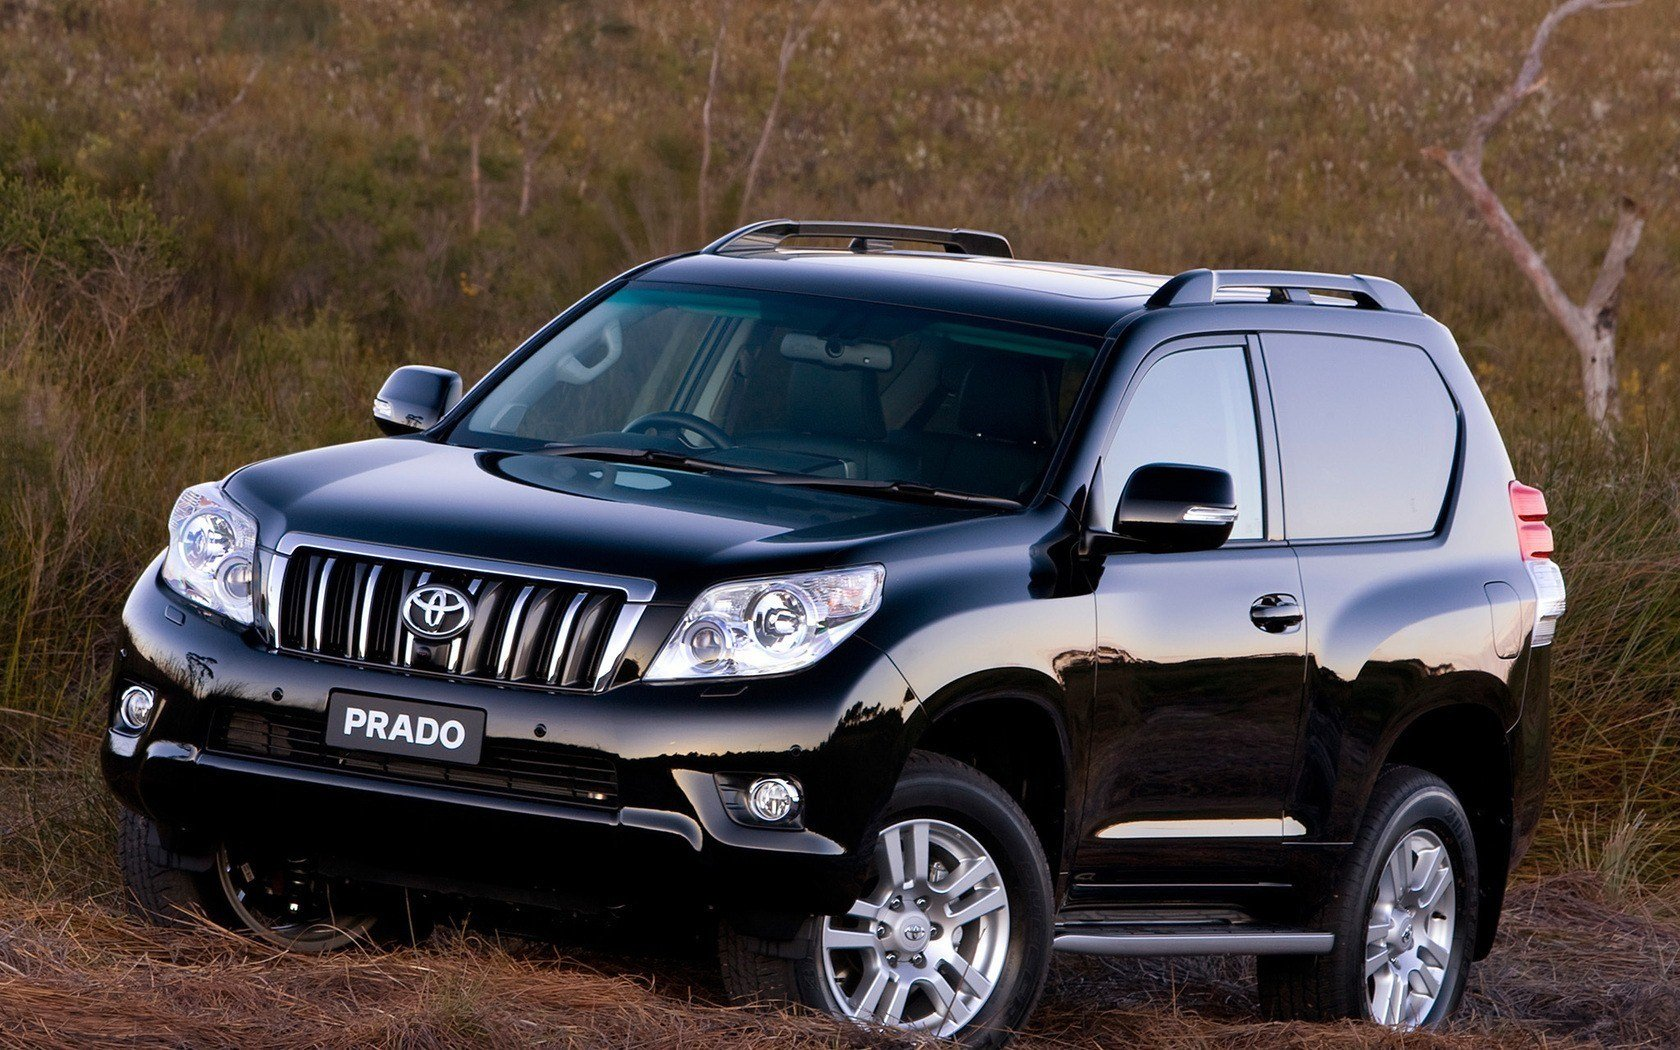 New Toyota Lend Kruzer Prado Car Hd Wallpapers On This Month